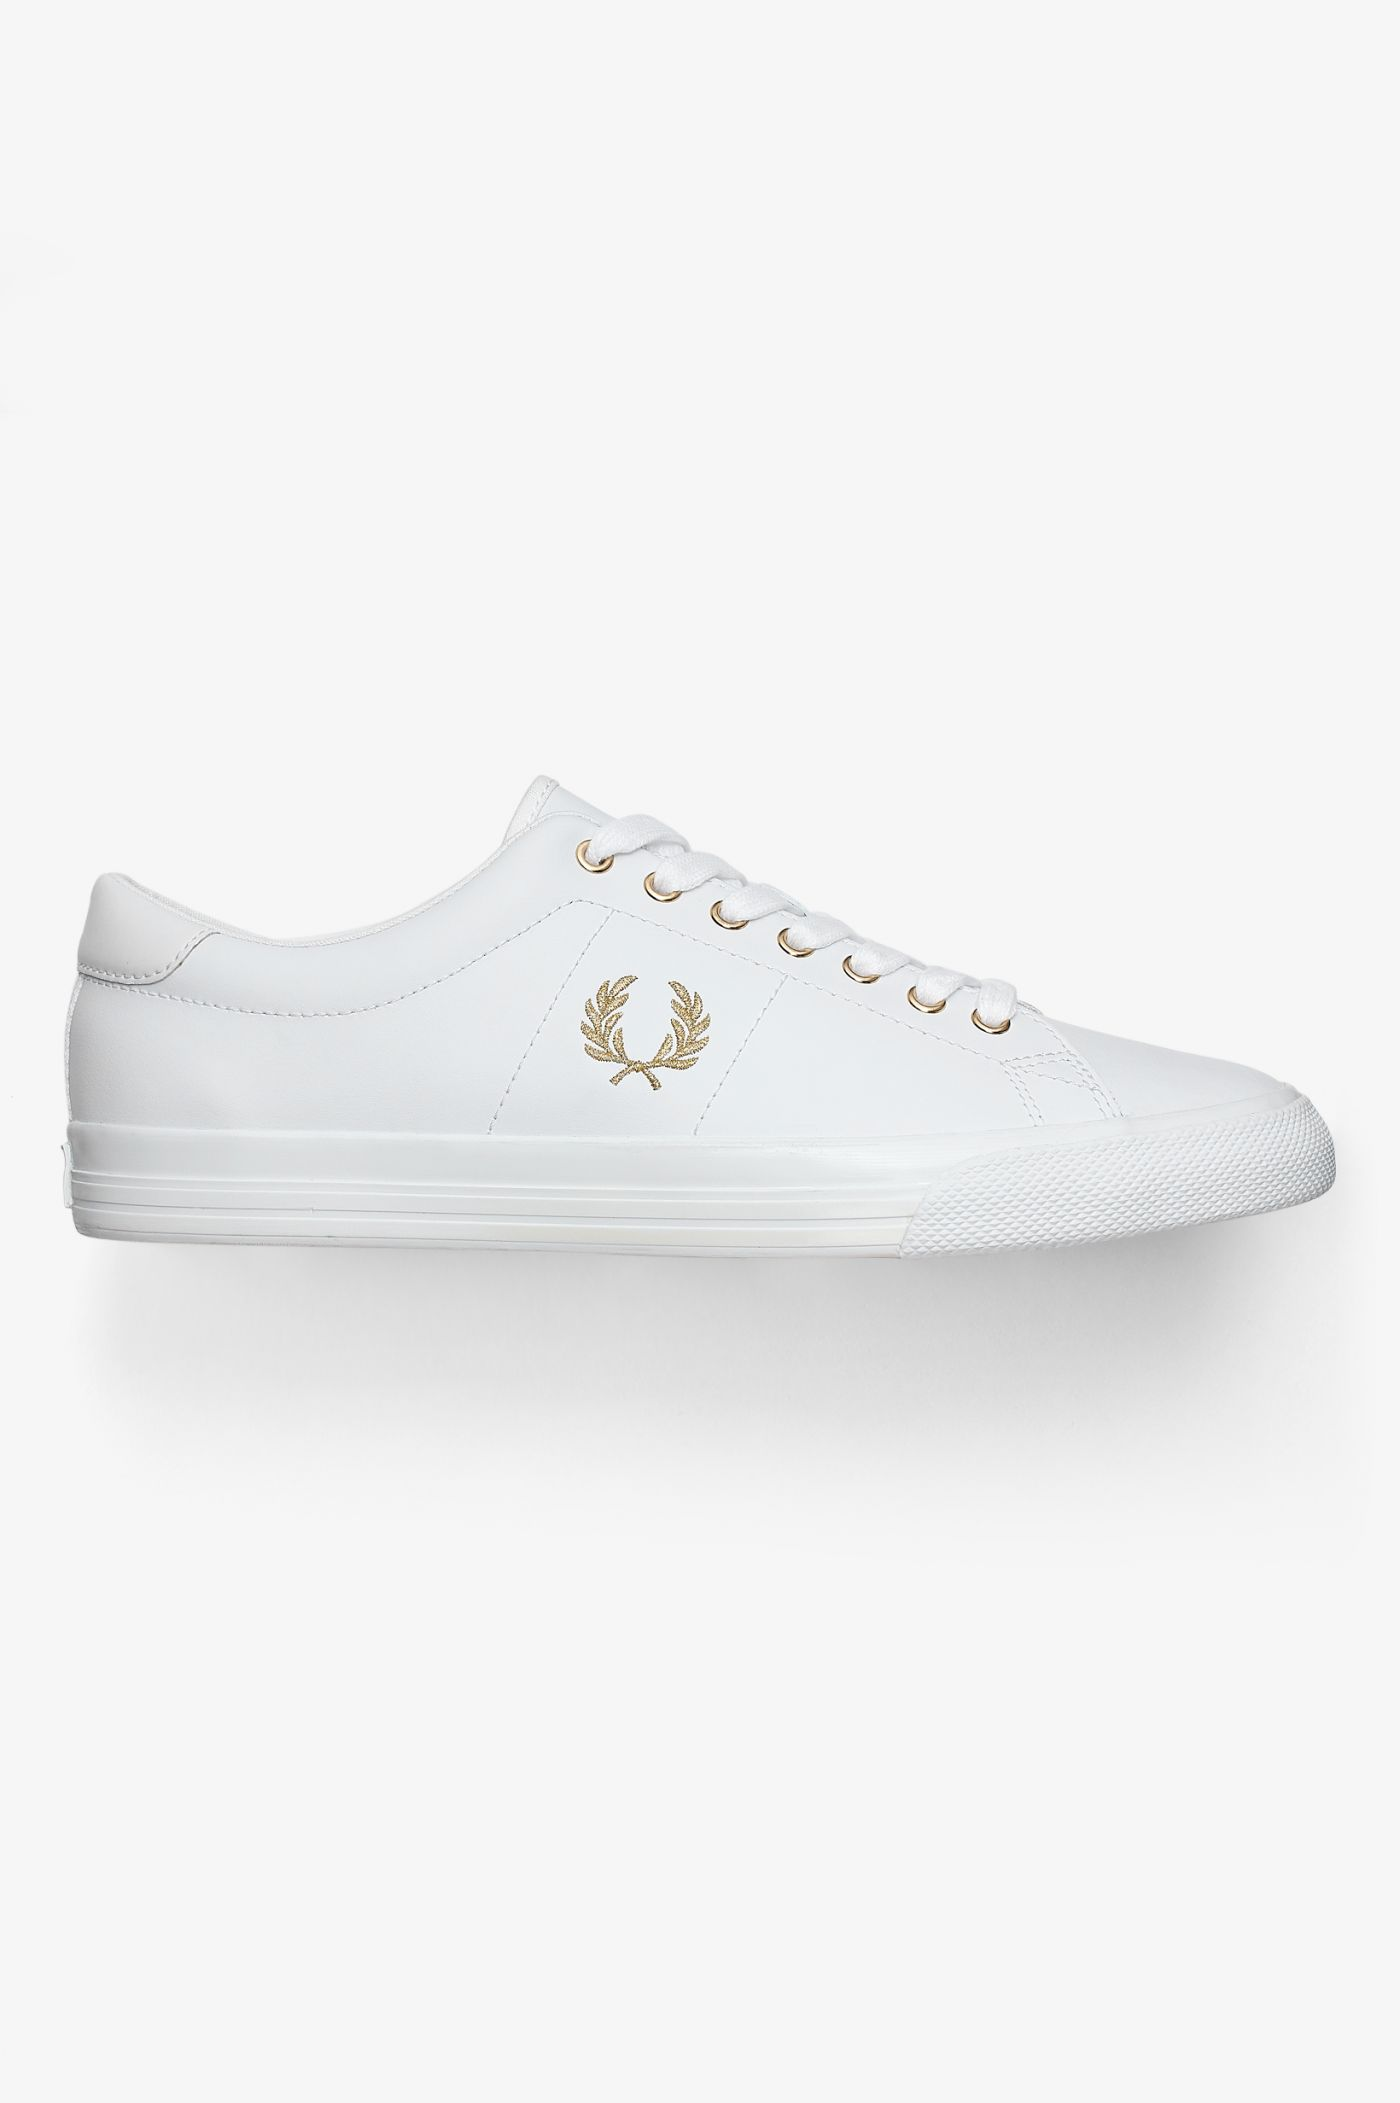 Underspin Leather - White | Men's